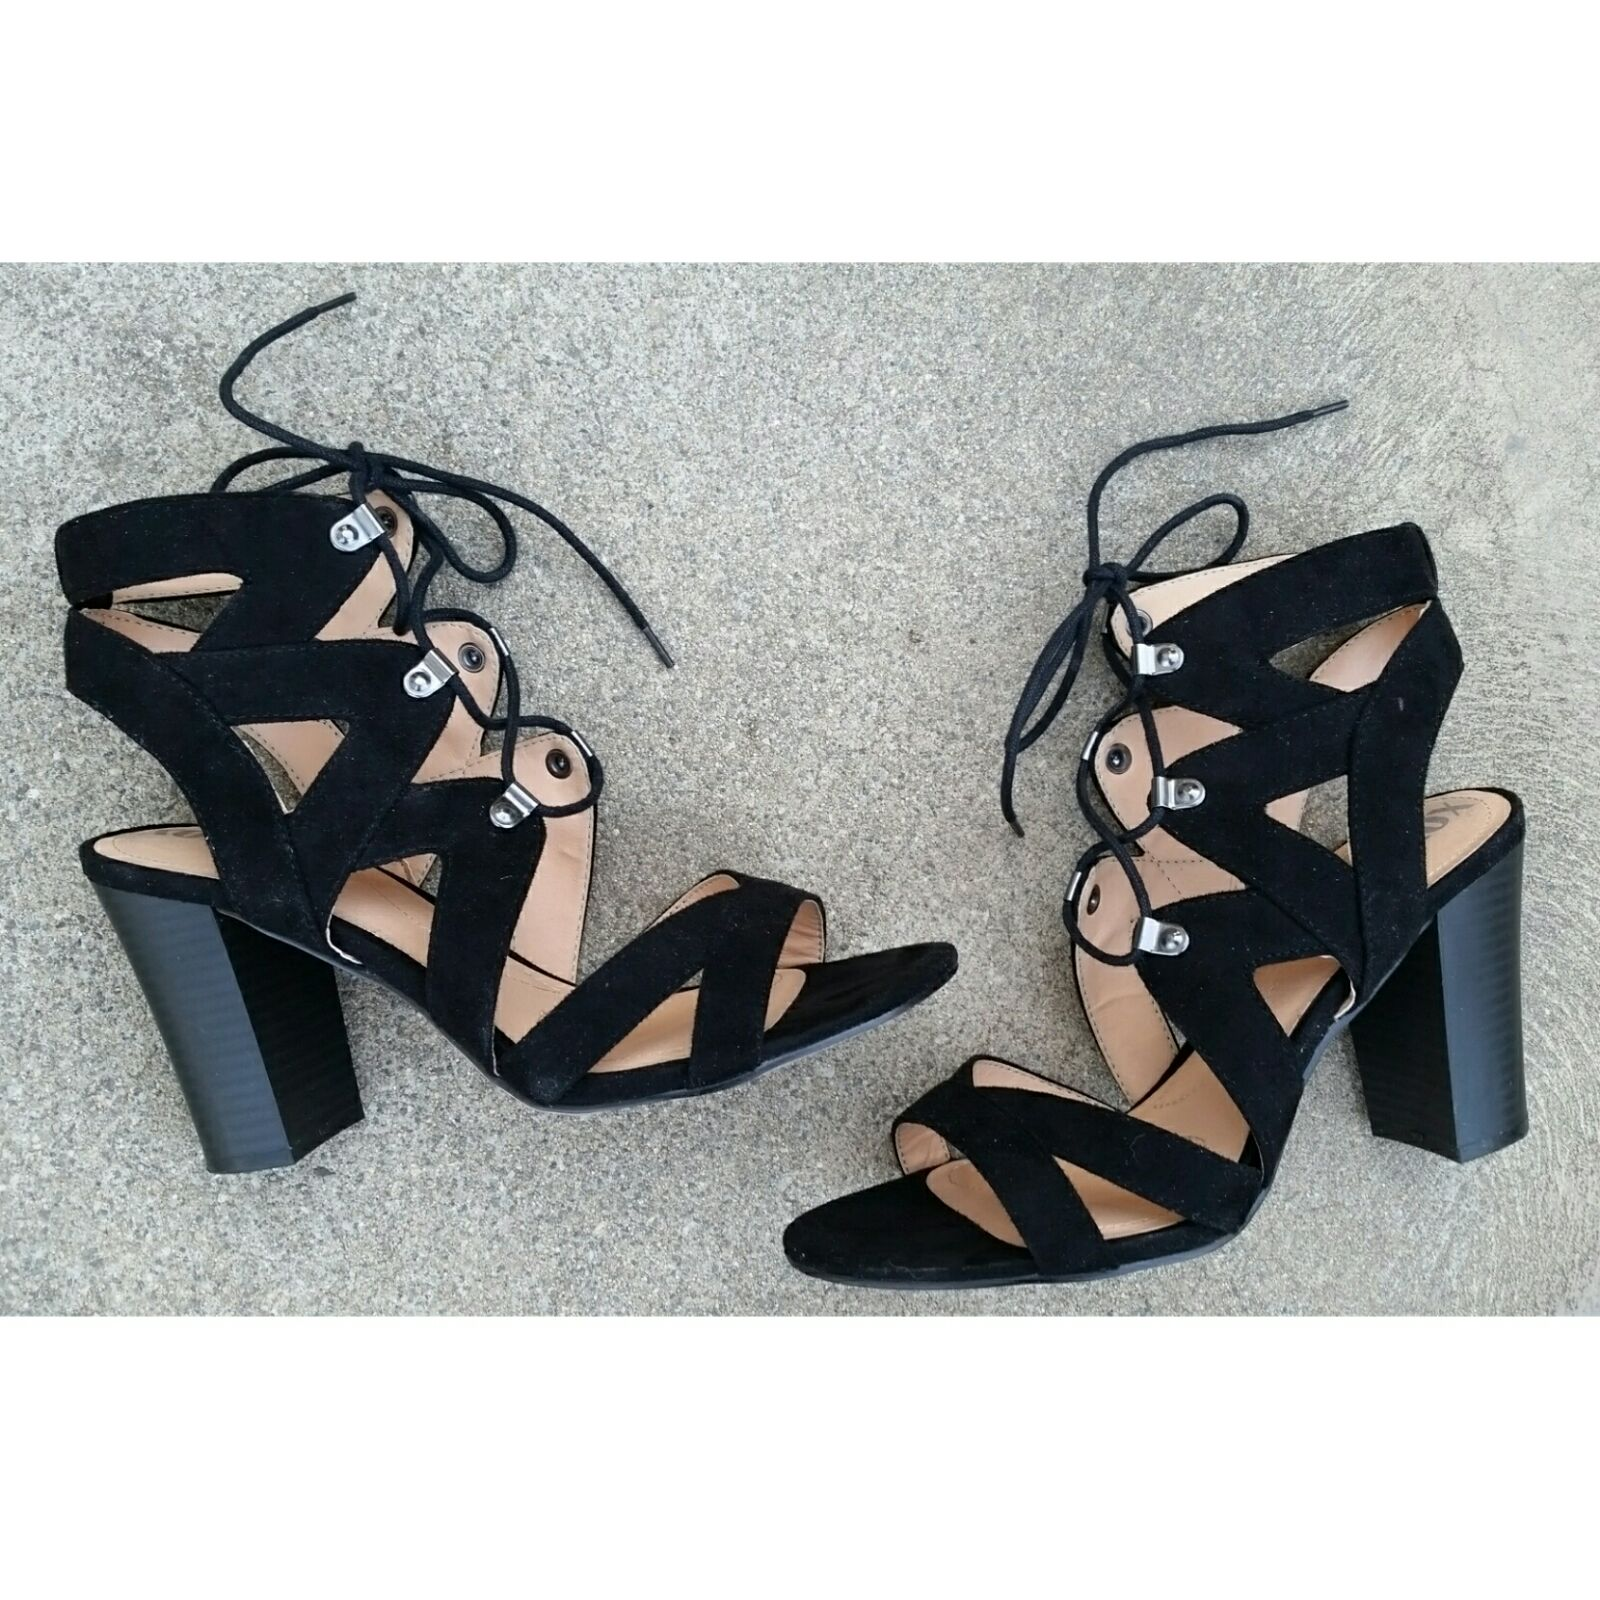 Black SEXY LACE UP STRAPPY SANDAL HEEL 9